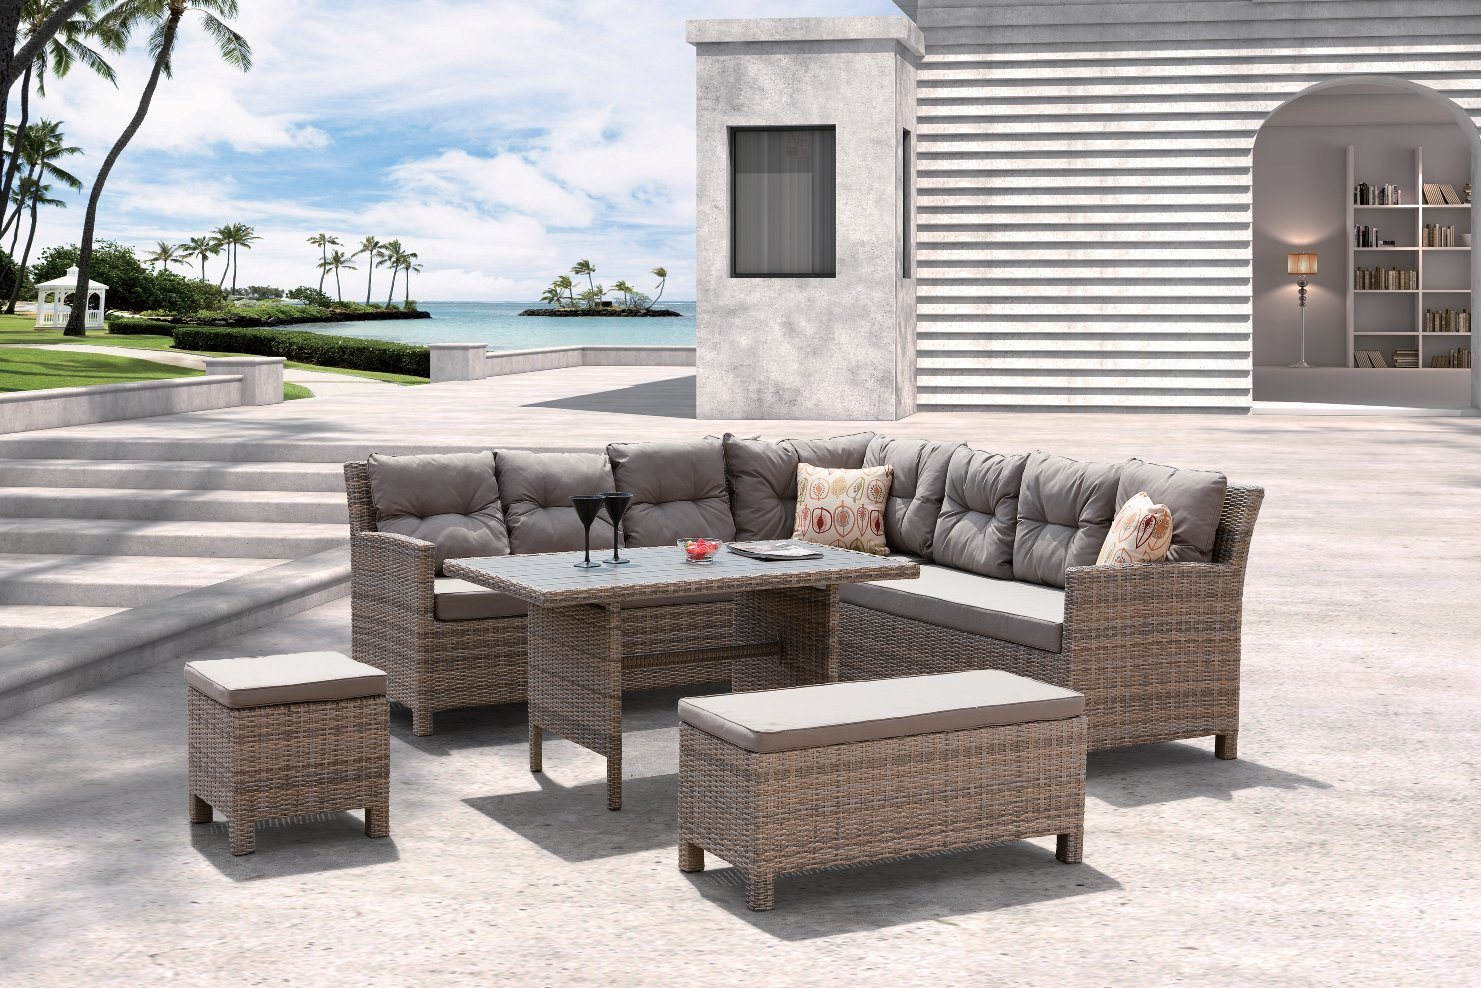 Garden Patio Barbados Lounge Home Hotel Office Restaurant Outdoor Sofa (J620)